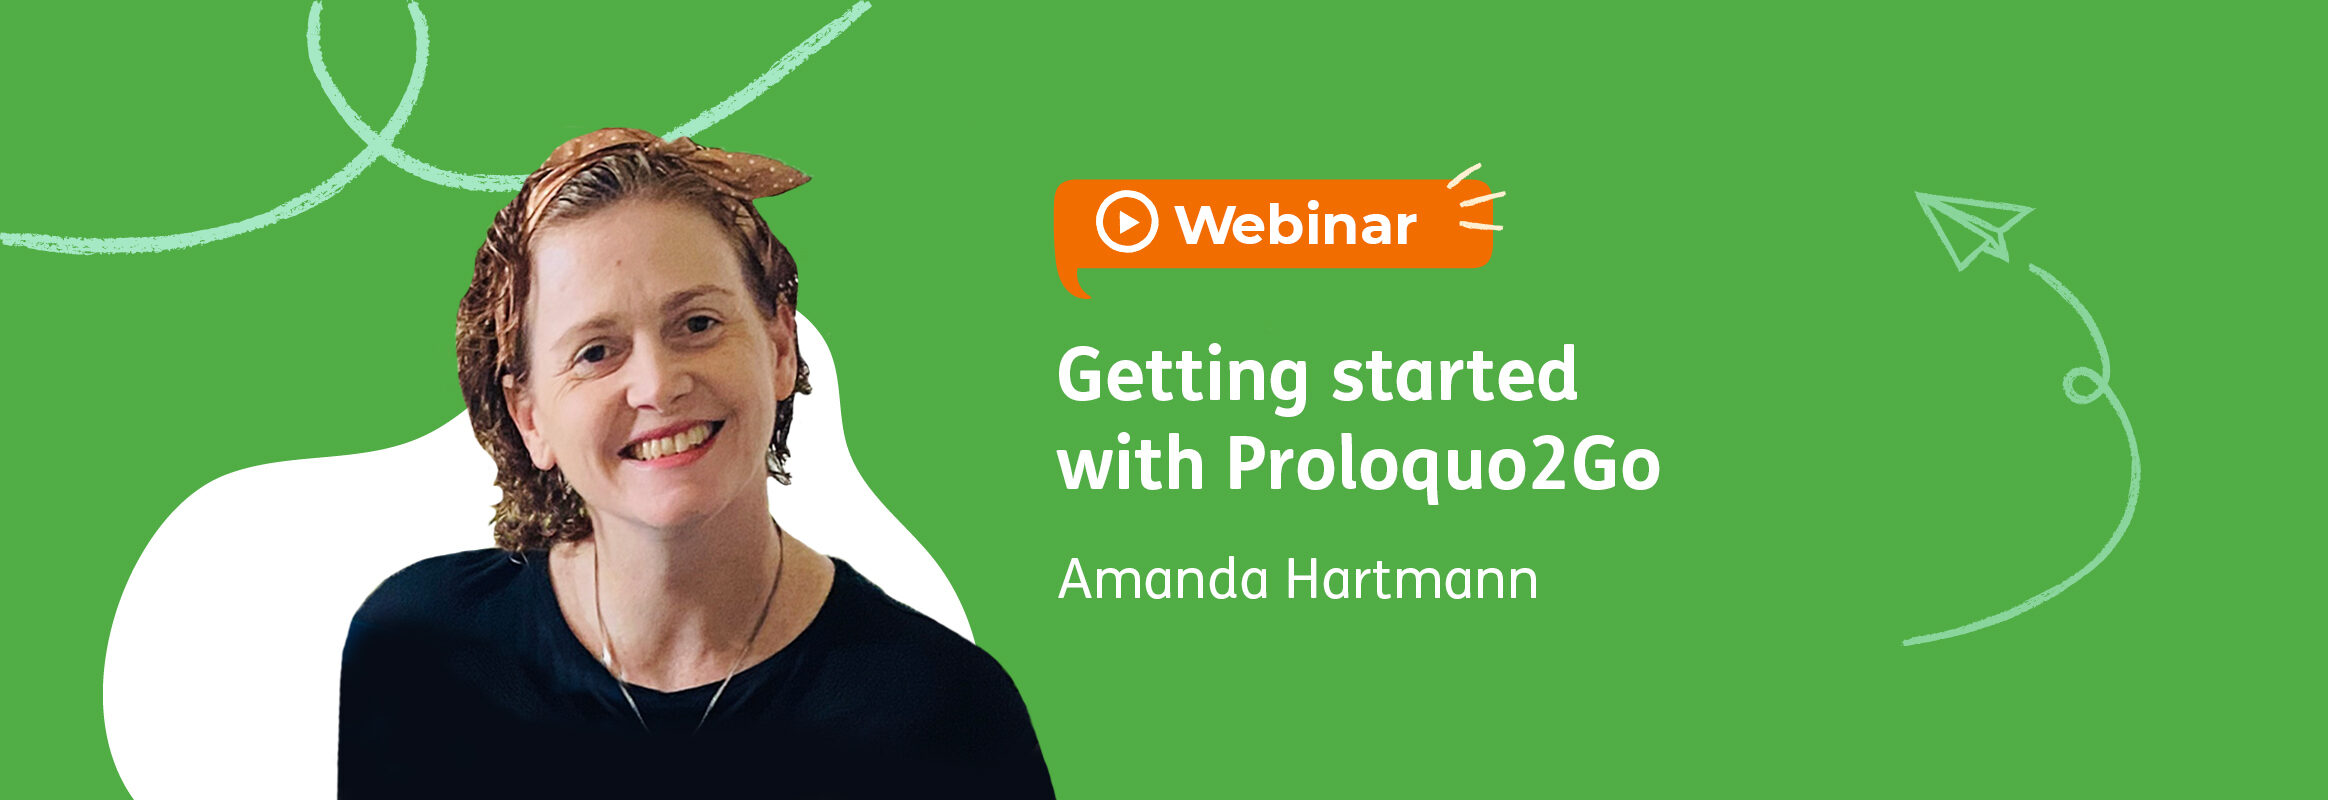 Webinar: Getting started with Proloquo2Go